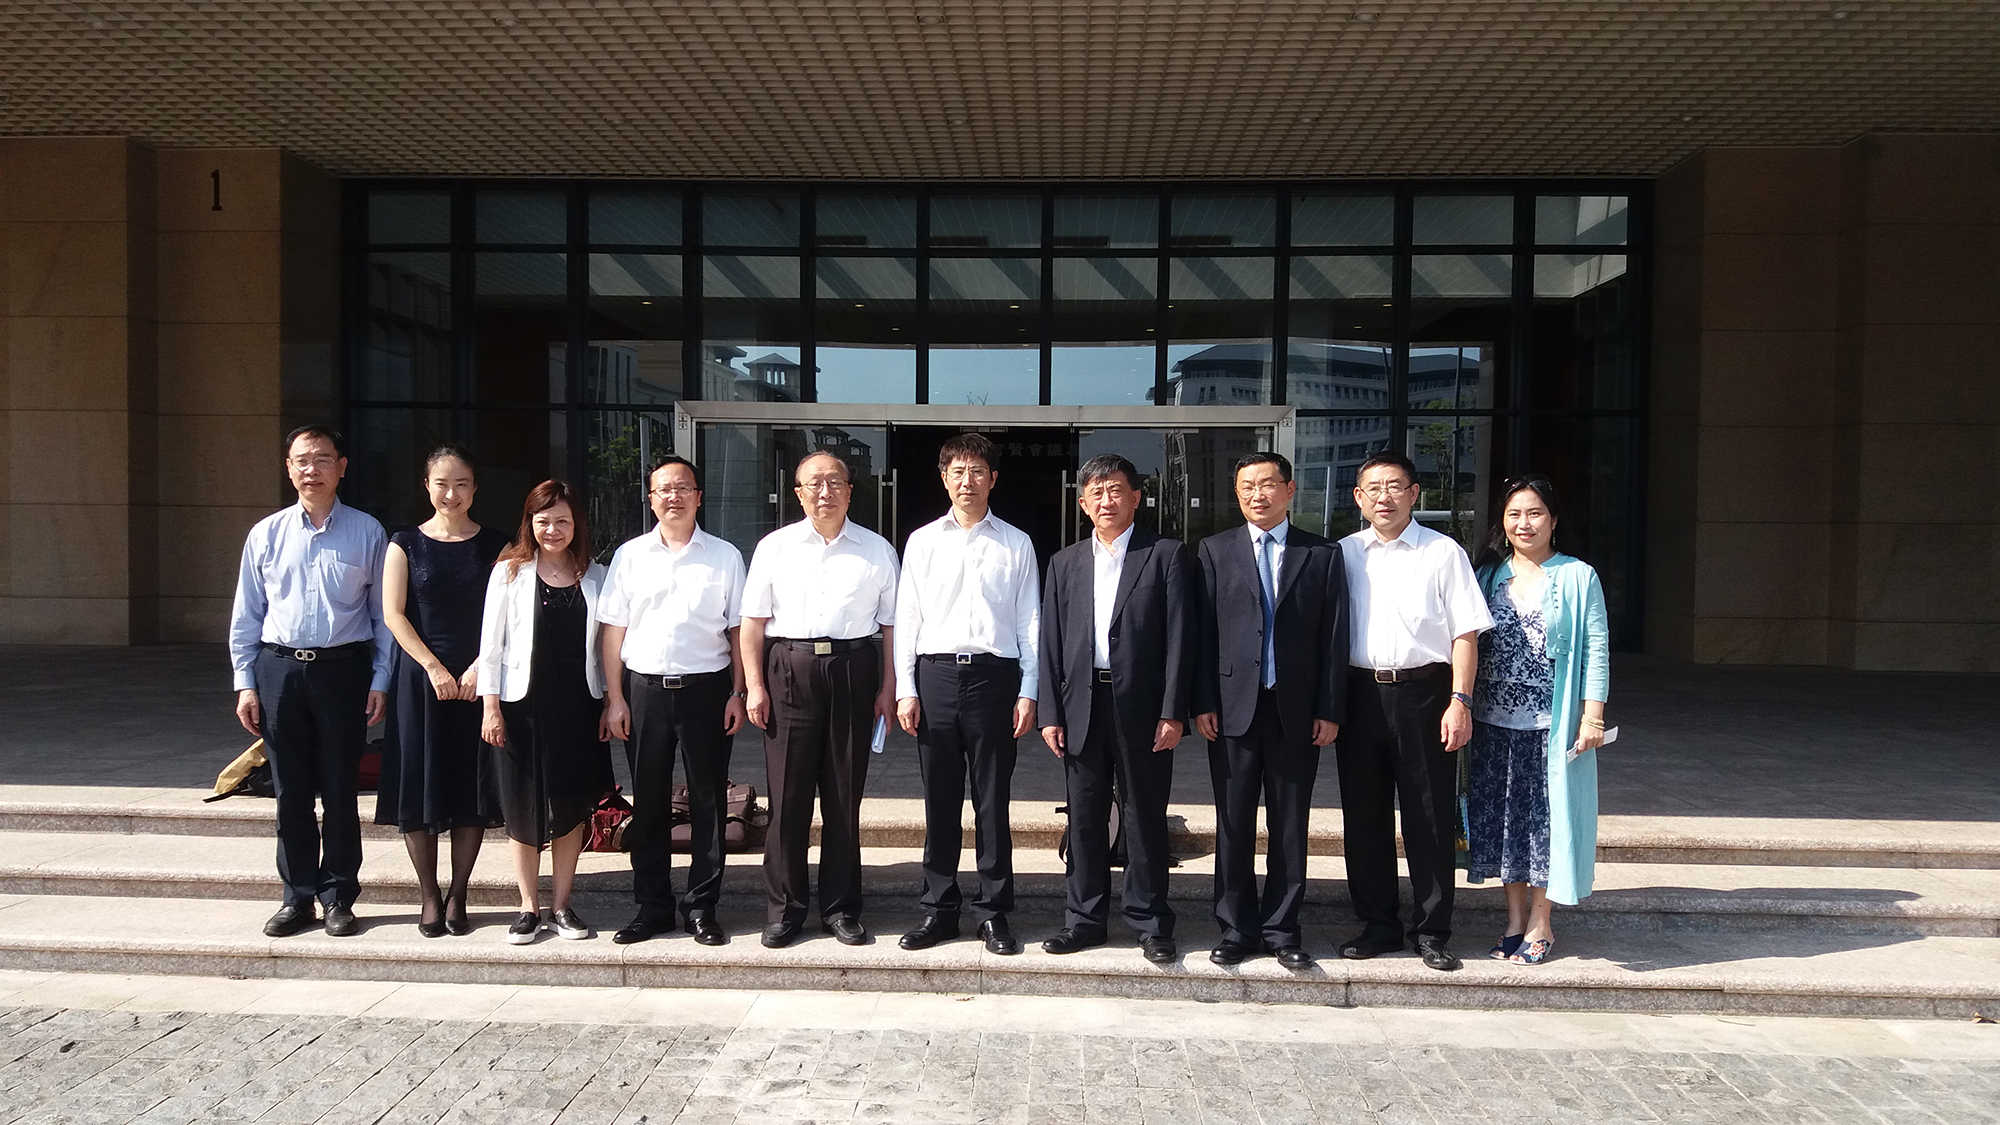 A delegation led by the director of the Department of Education of Sichuan Province visits UM